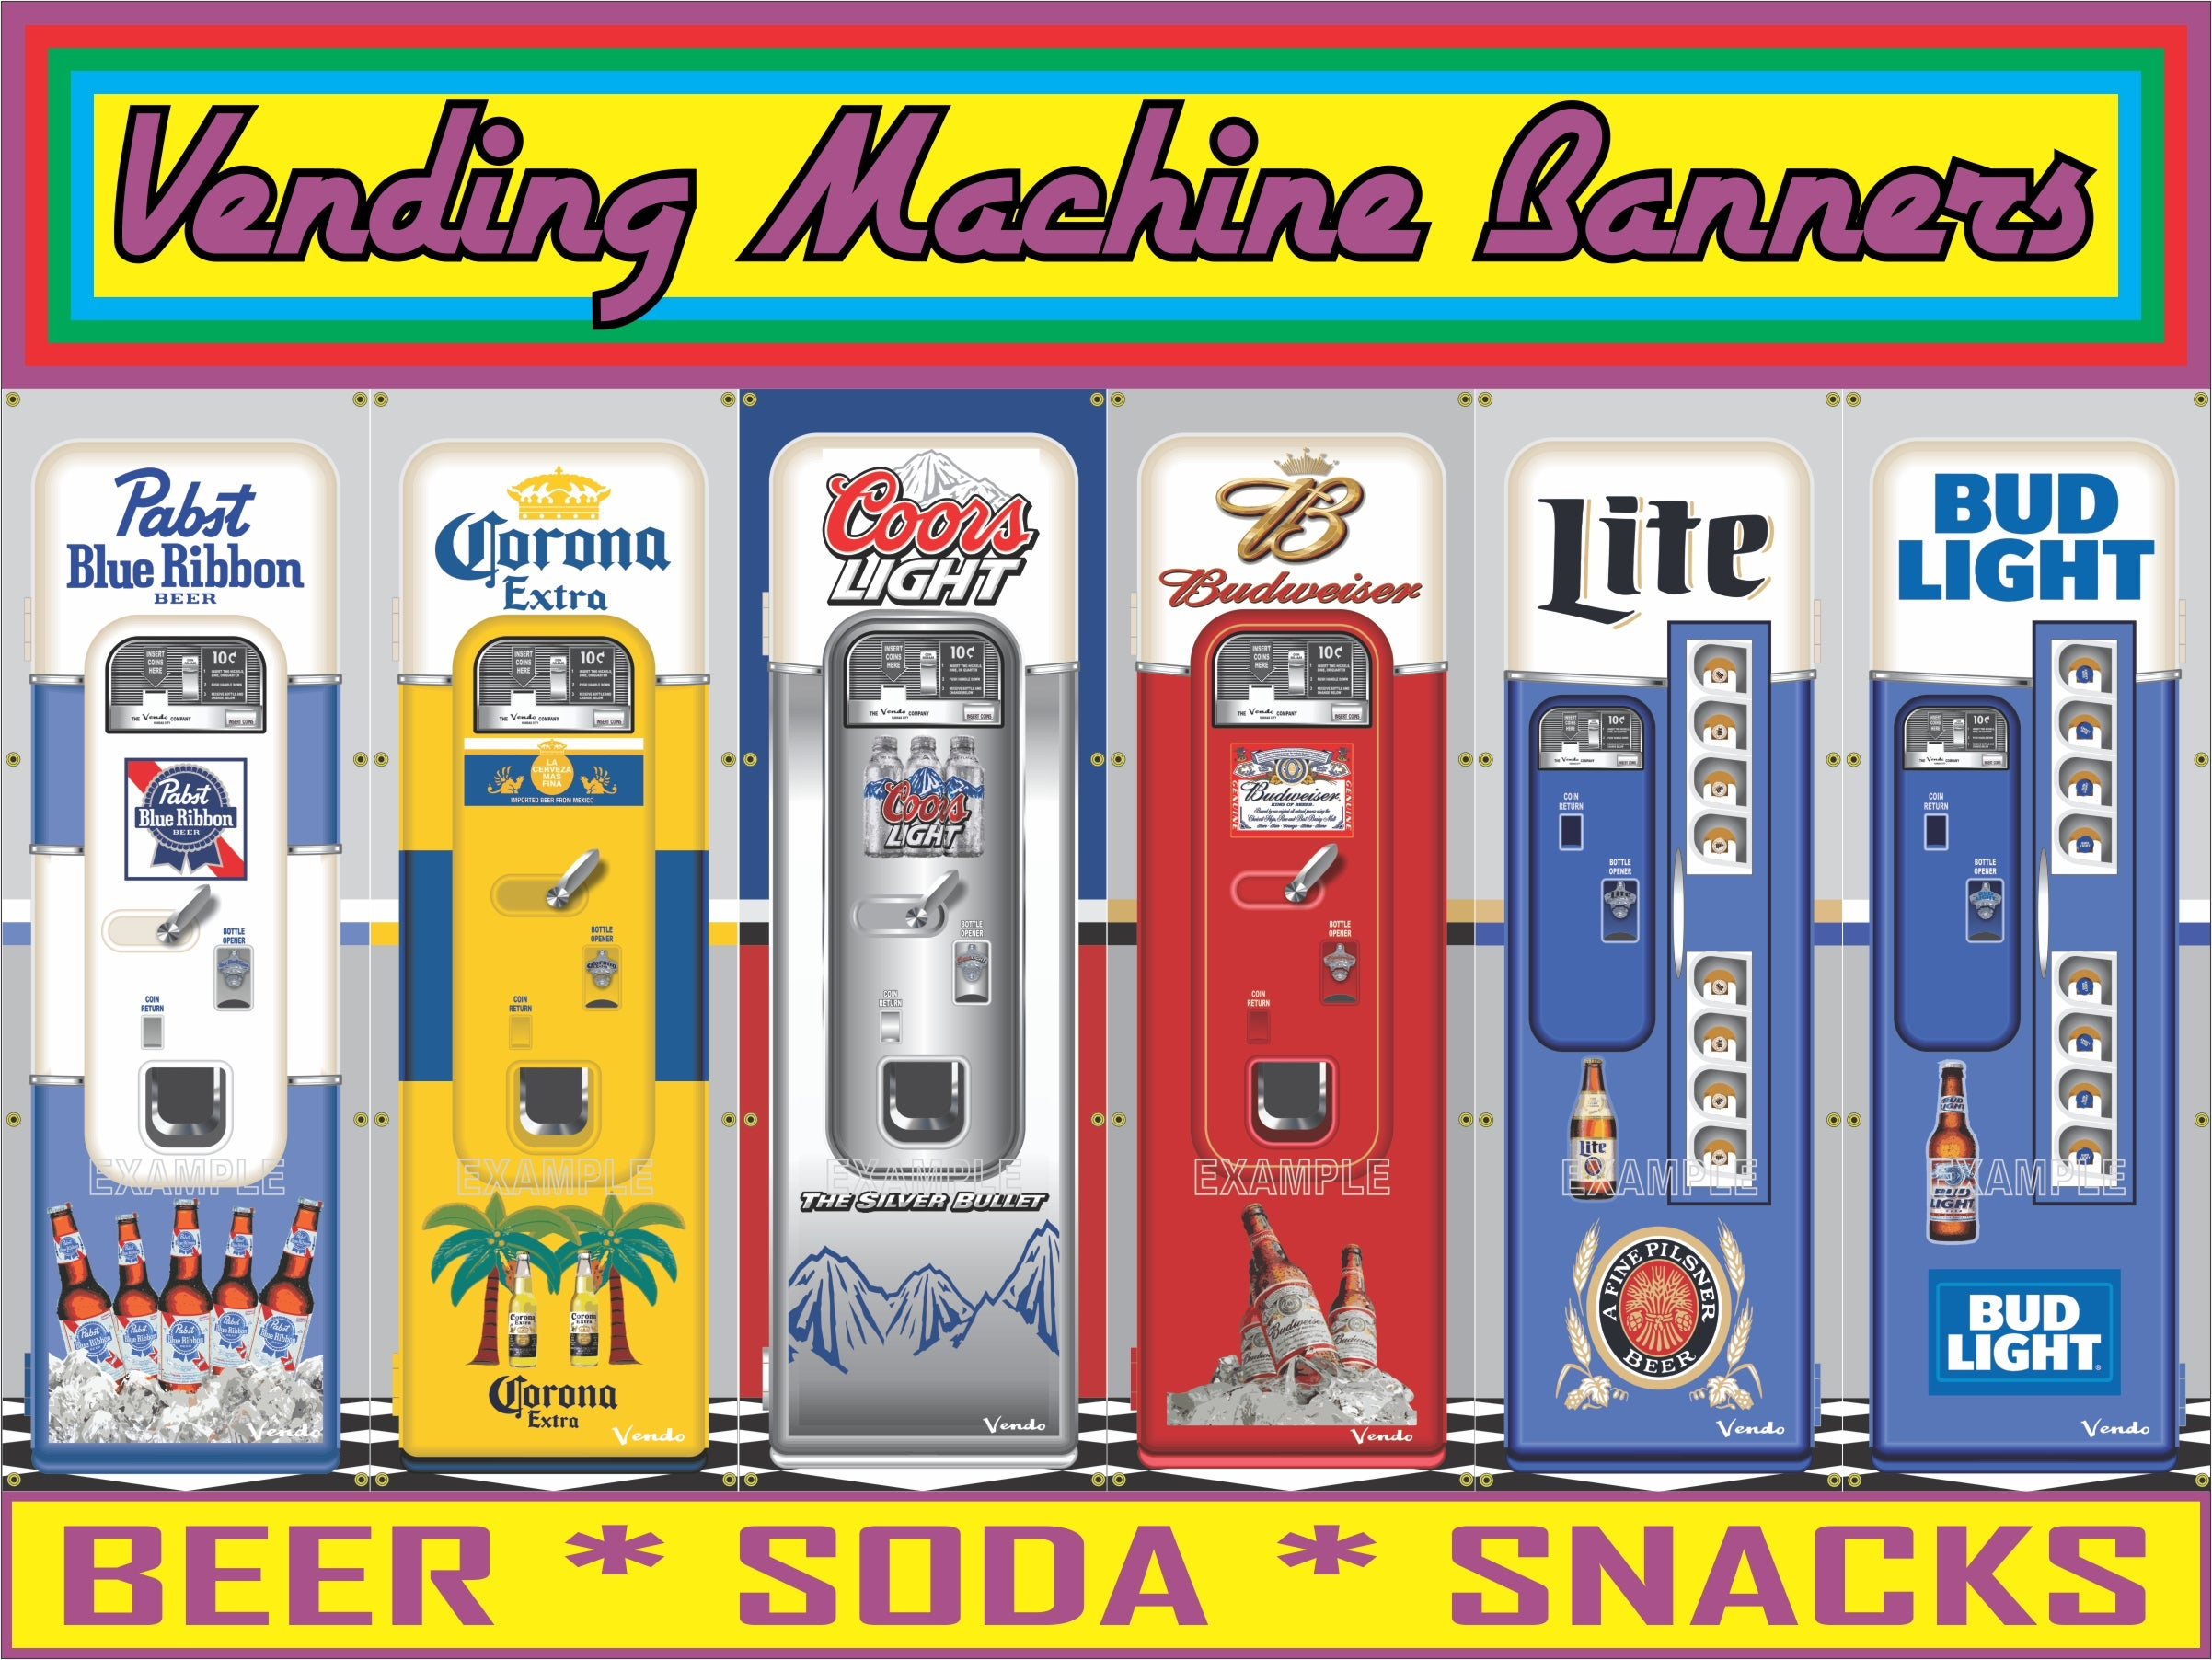 VENDING MACHINE BANNERS